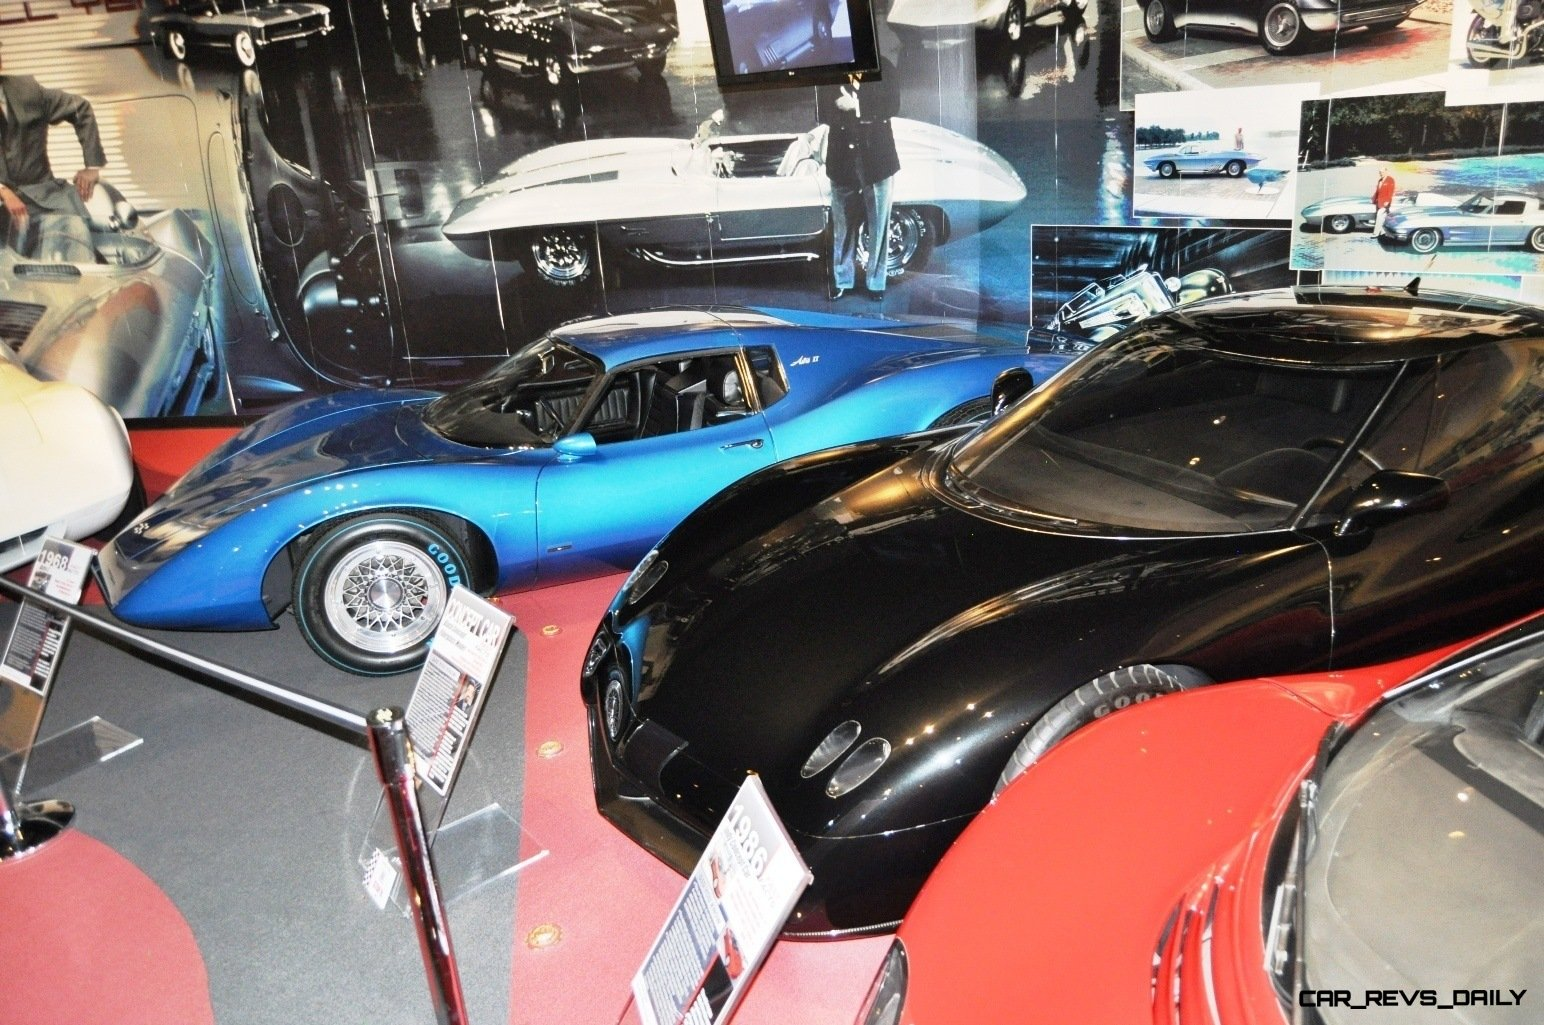 1968 Corvette ASTRO and ASTRO II Concepts at the National Corvette Museum + Ferrari and Bugatti-style Concepts 32